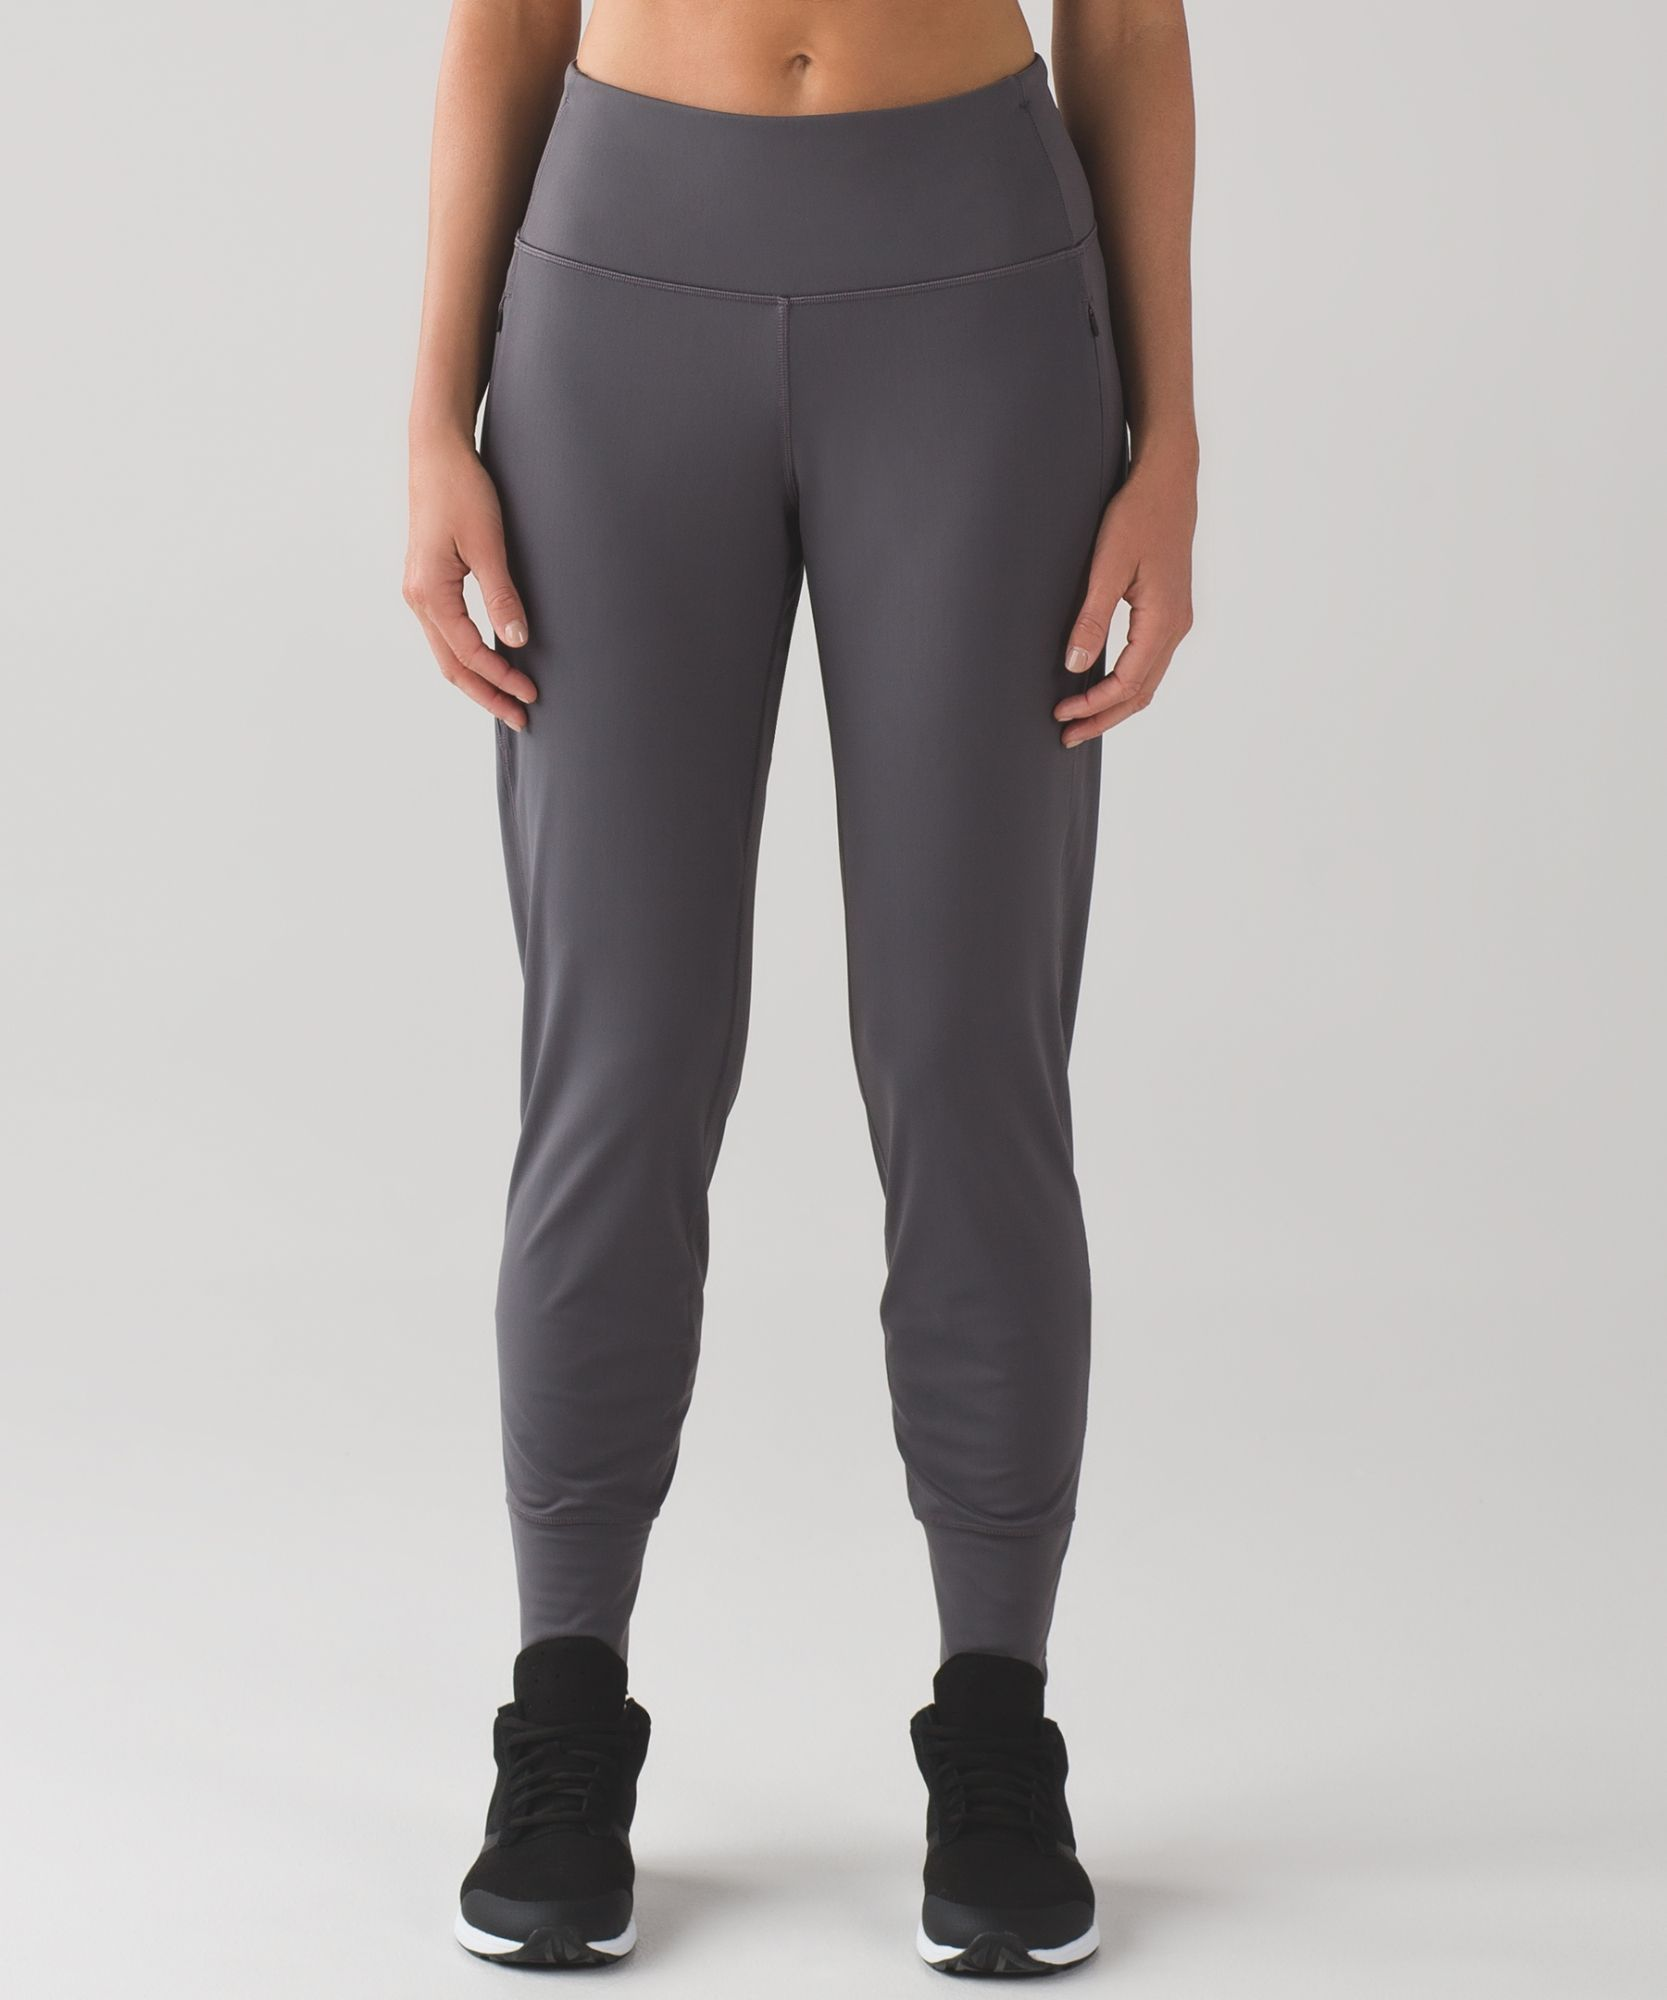 d9843df6e9 Fresh Tracks Pant Lululemon Pants, Women's Pants, Pants For Women, Track,  Trousers